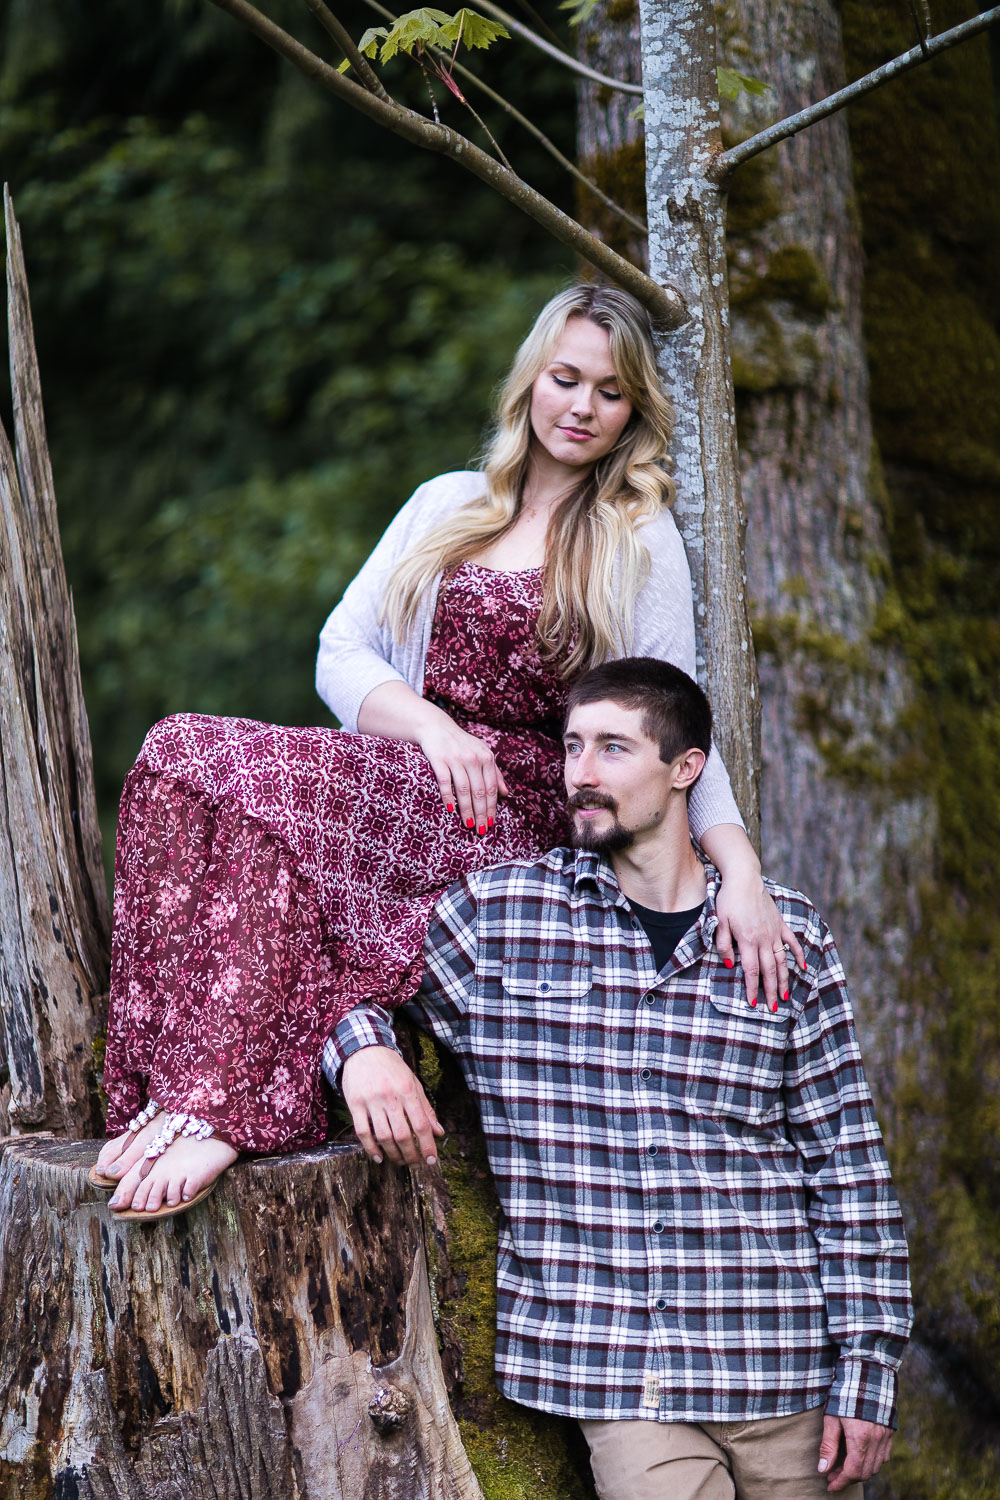 backyard-country-style-engagement-harth-photography-89.jpg